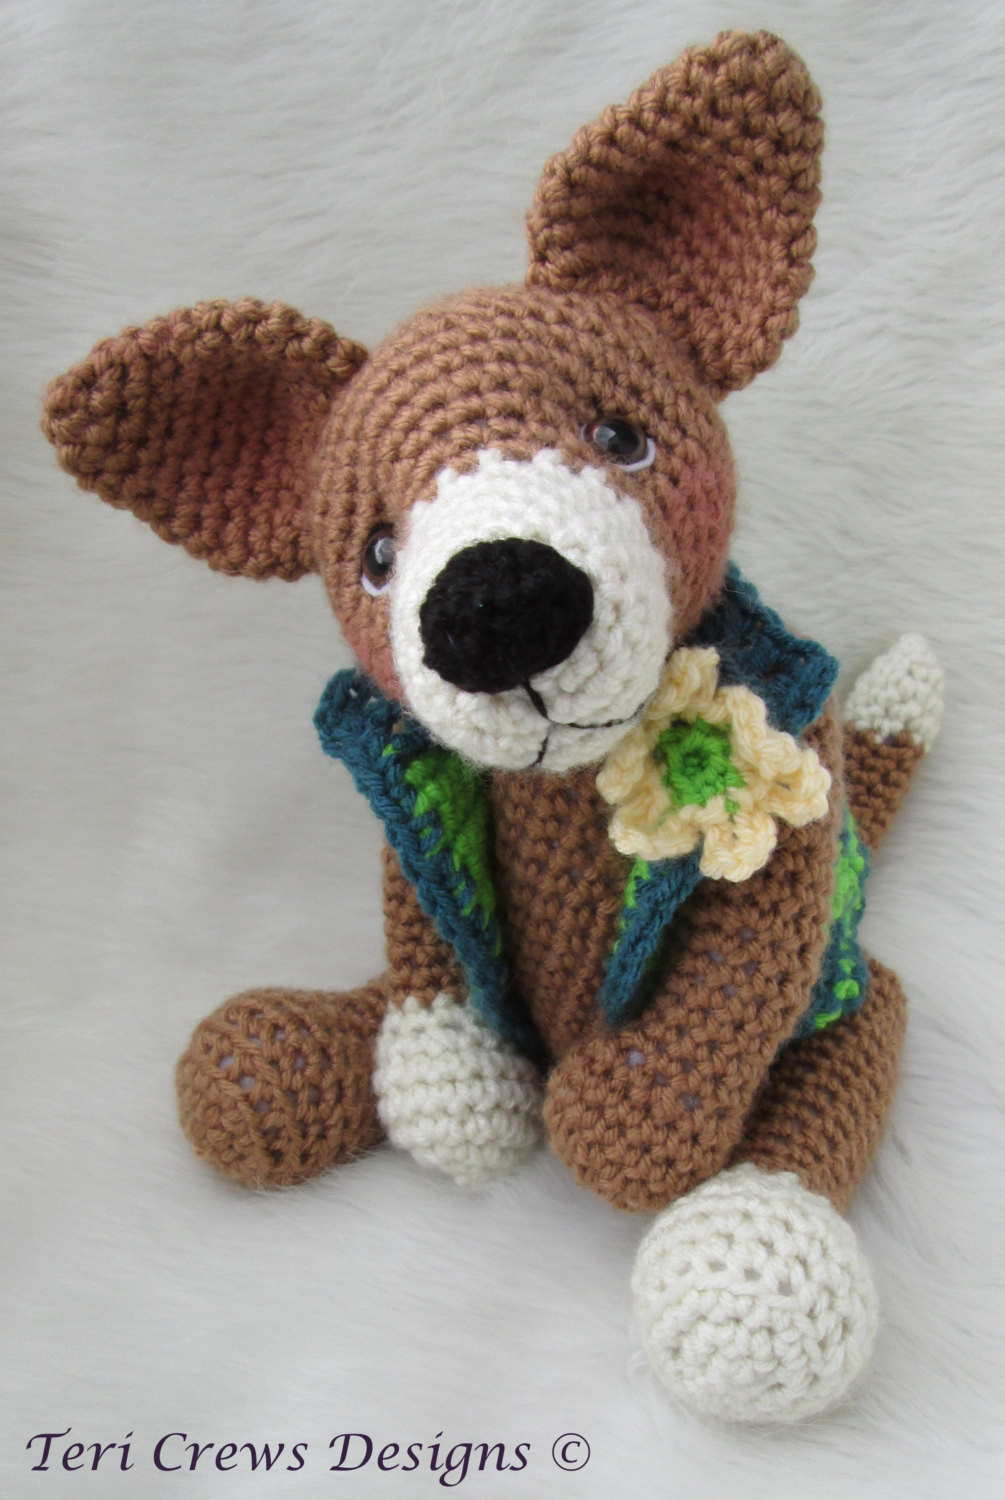 Crochet Dog Pattern Lovely Crochet Pattern Chiwawa Dog by Teri Crews Instant Pdf Of Brilliant 41 Images Crochet Dog Pattern